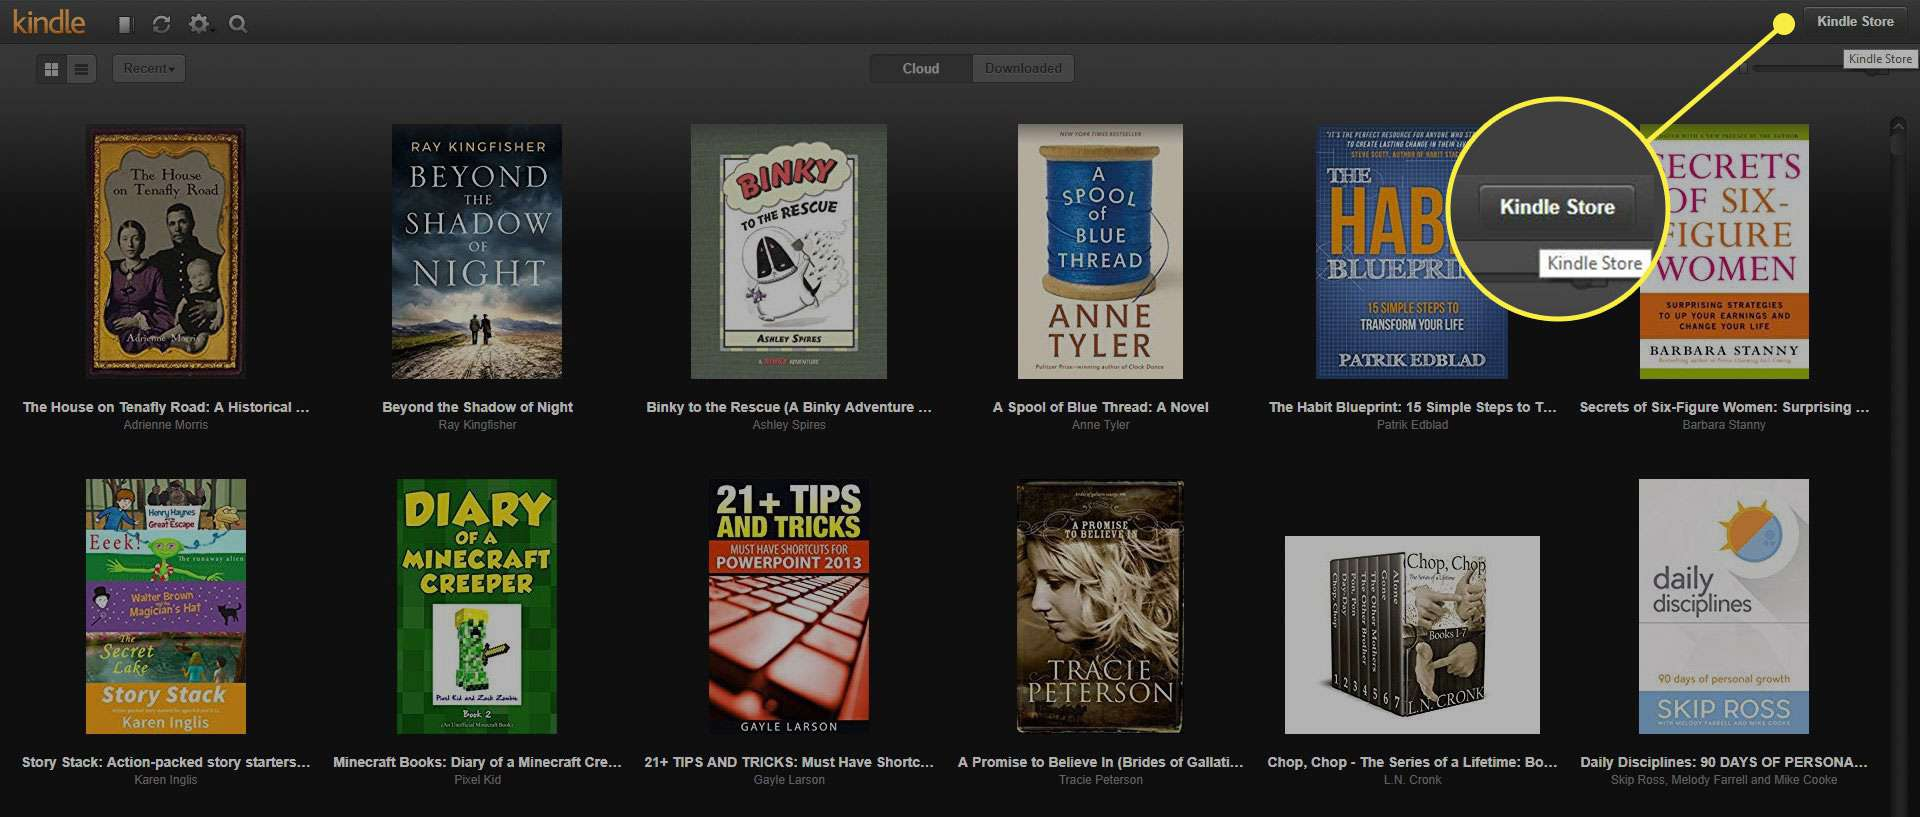 The Kindle Store button